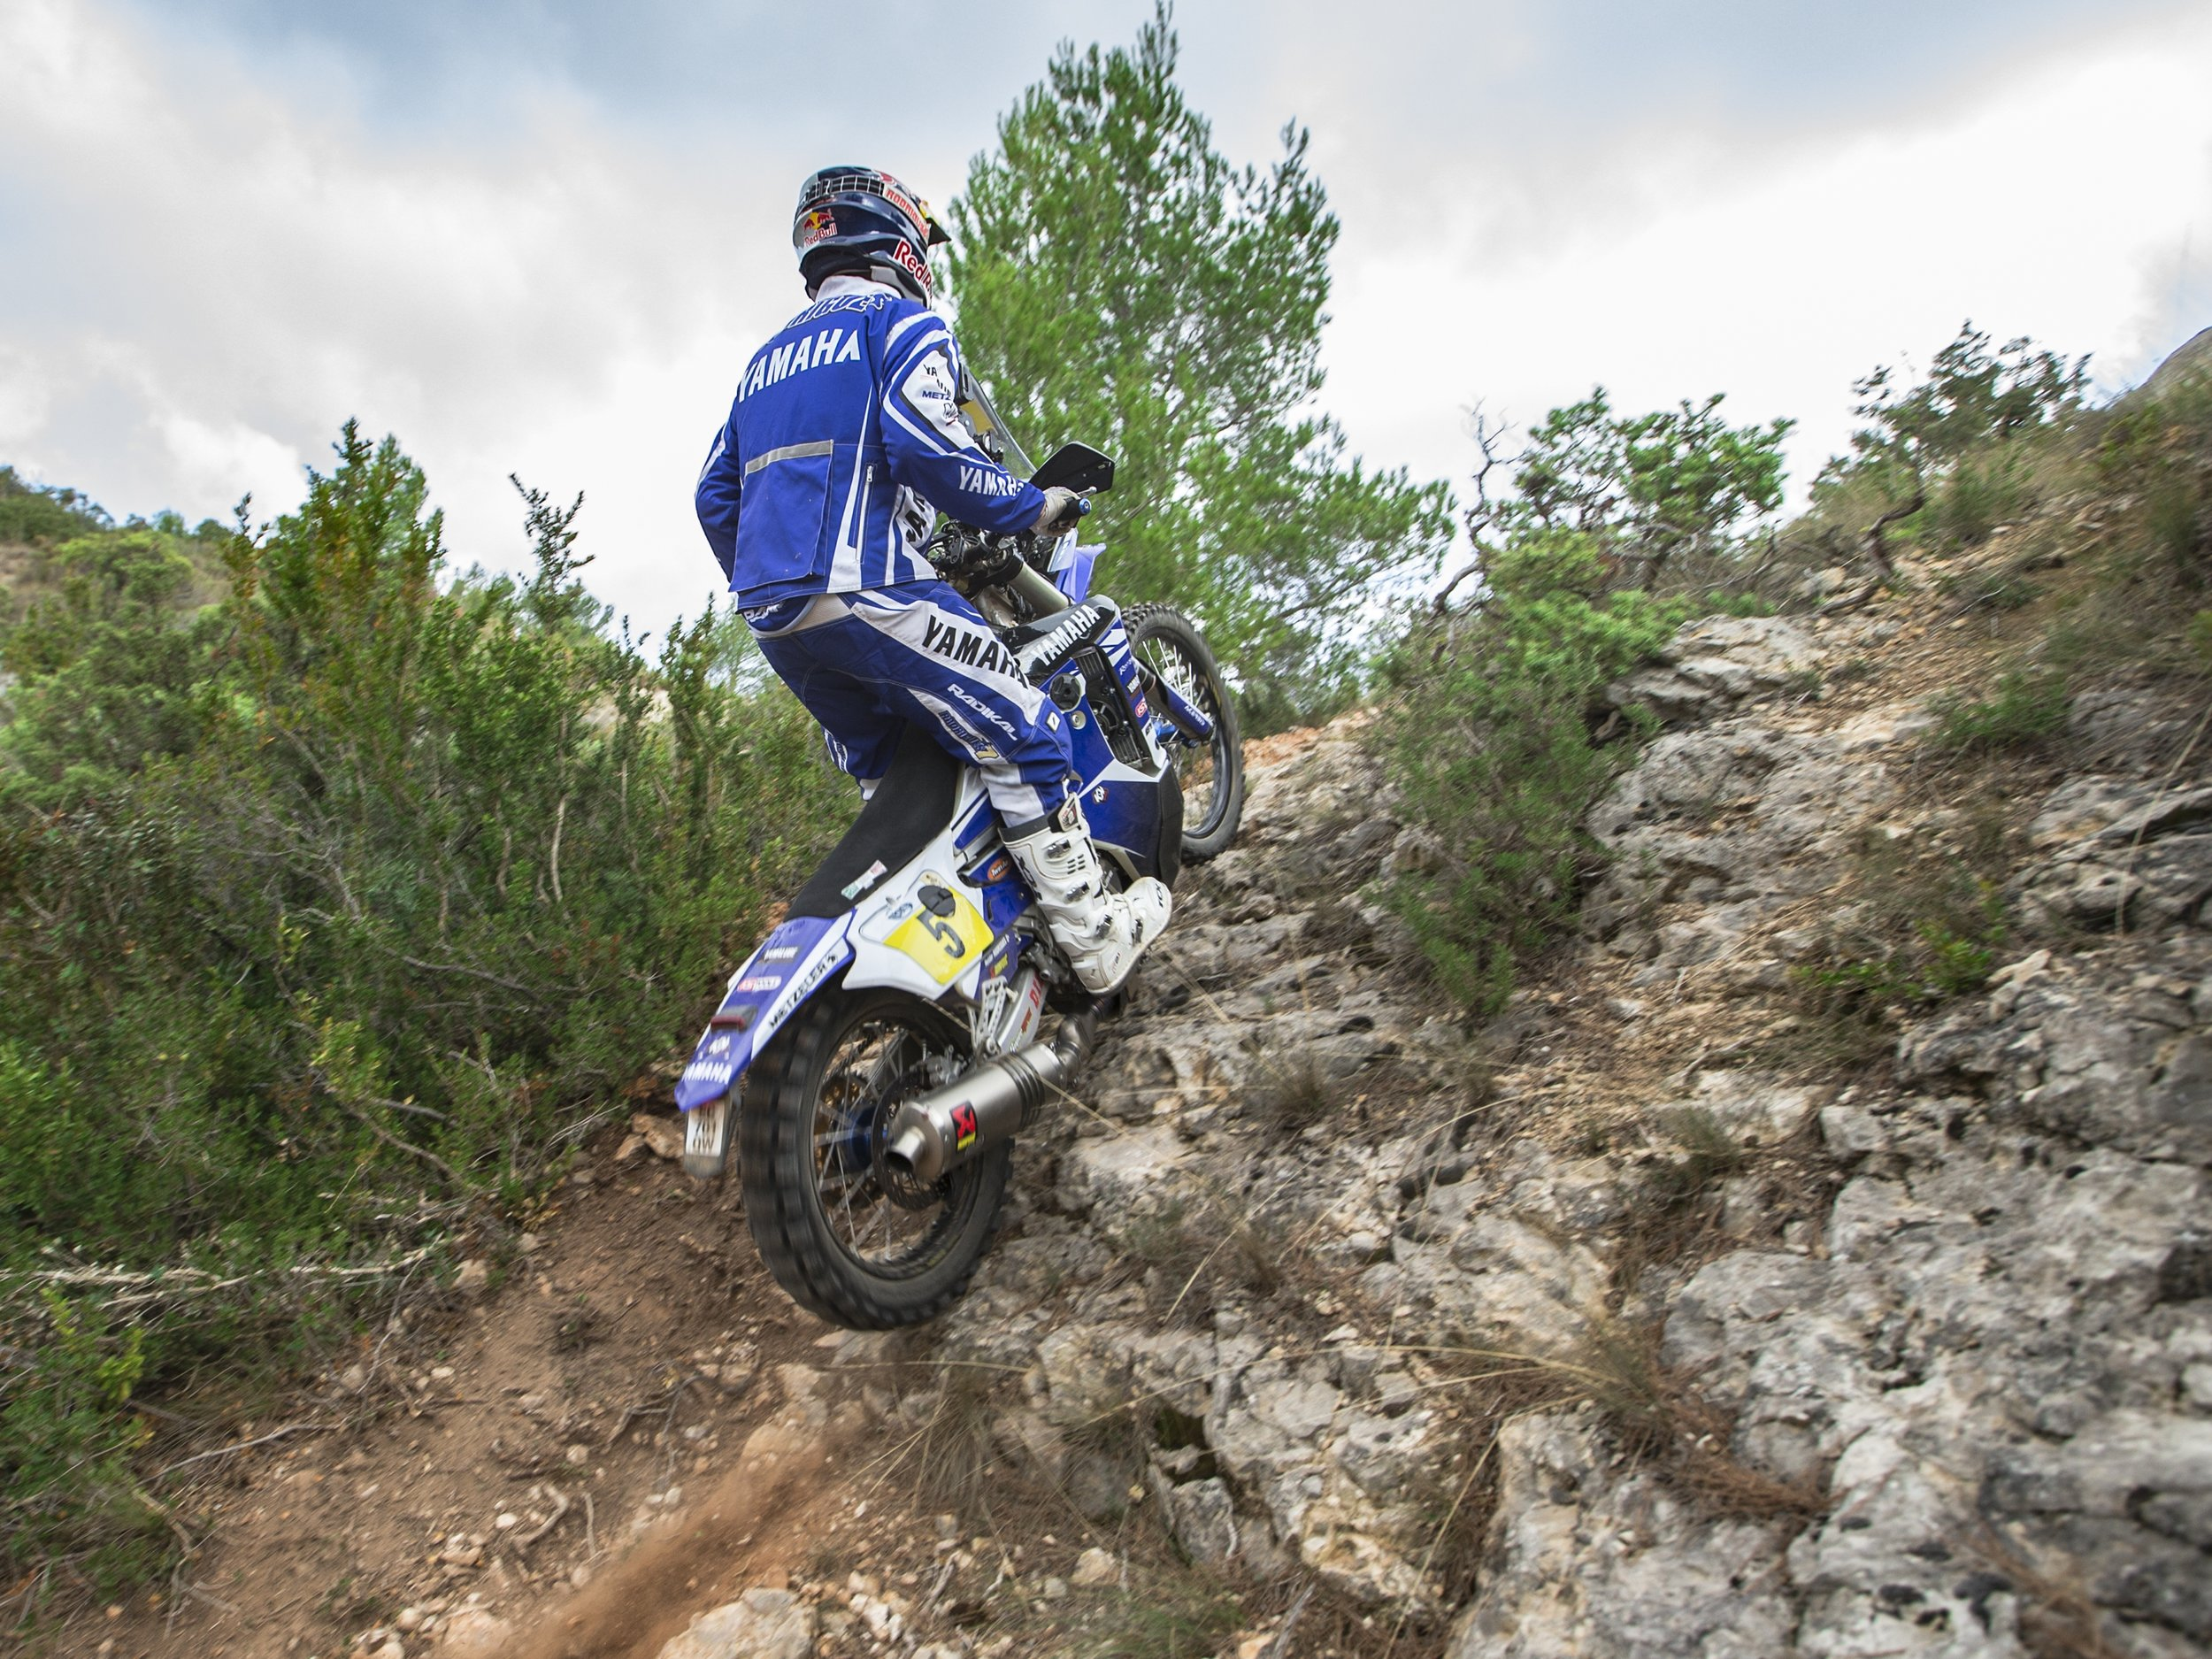 2017_WR450FRALLY_ACT_003.jpg